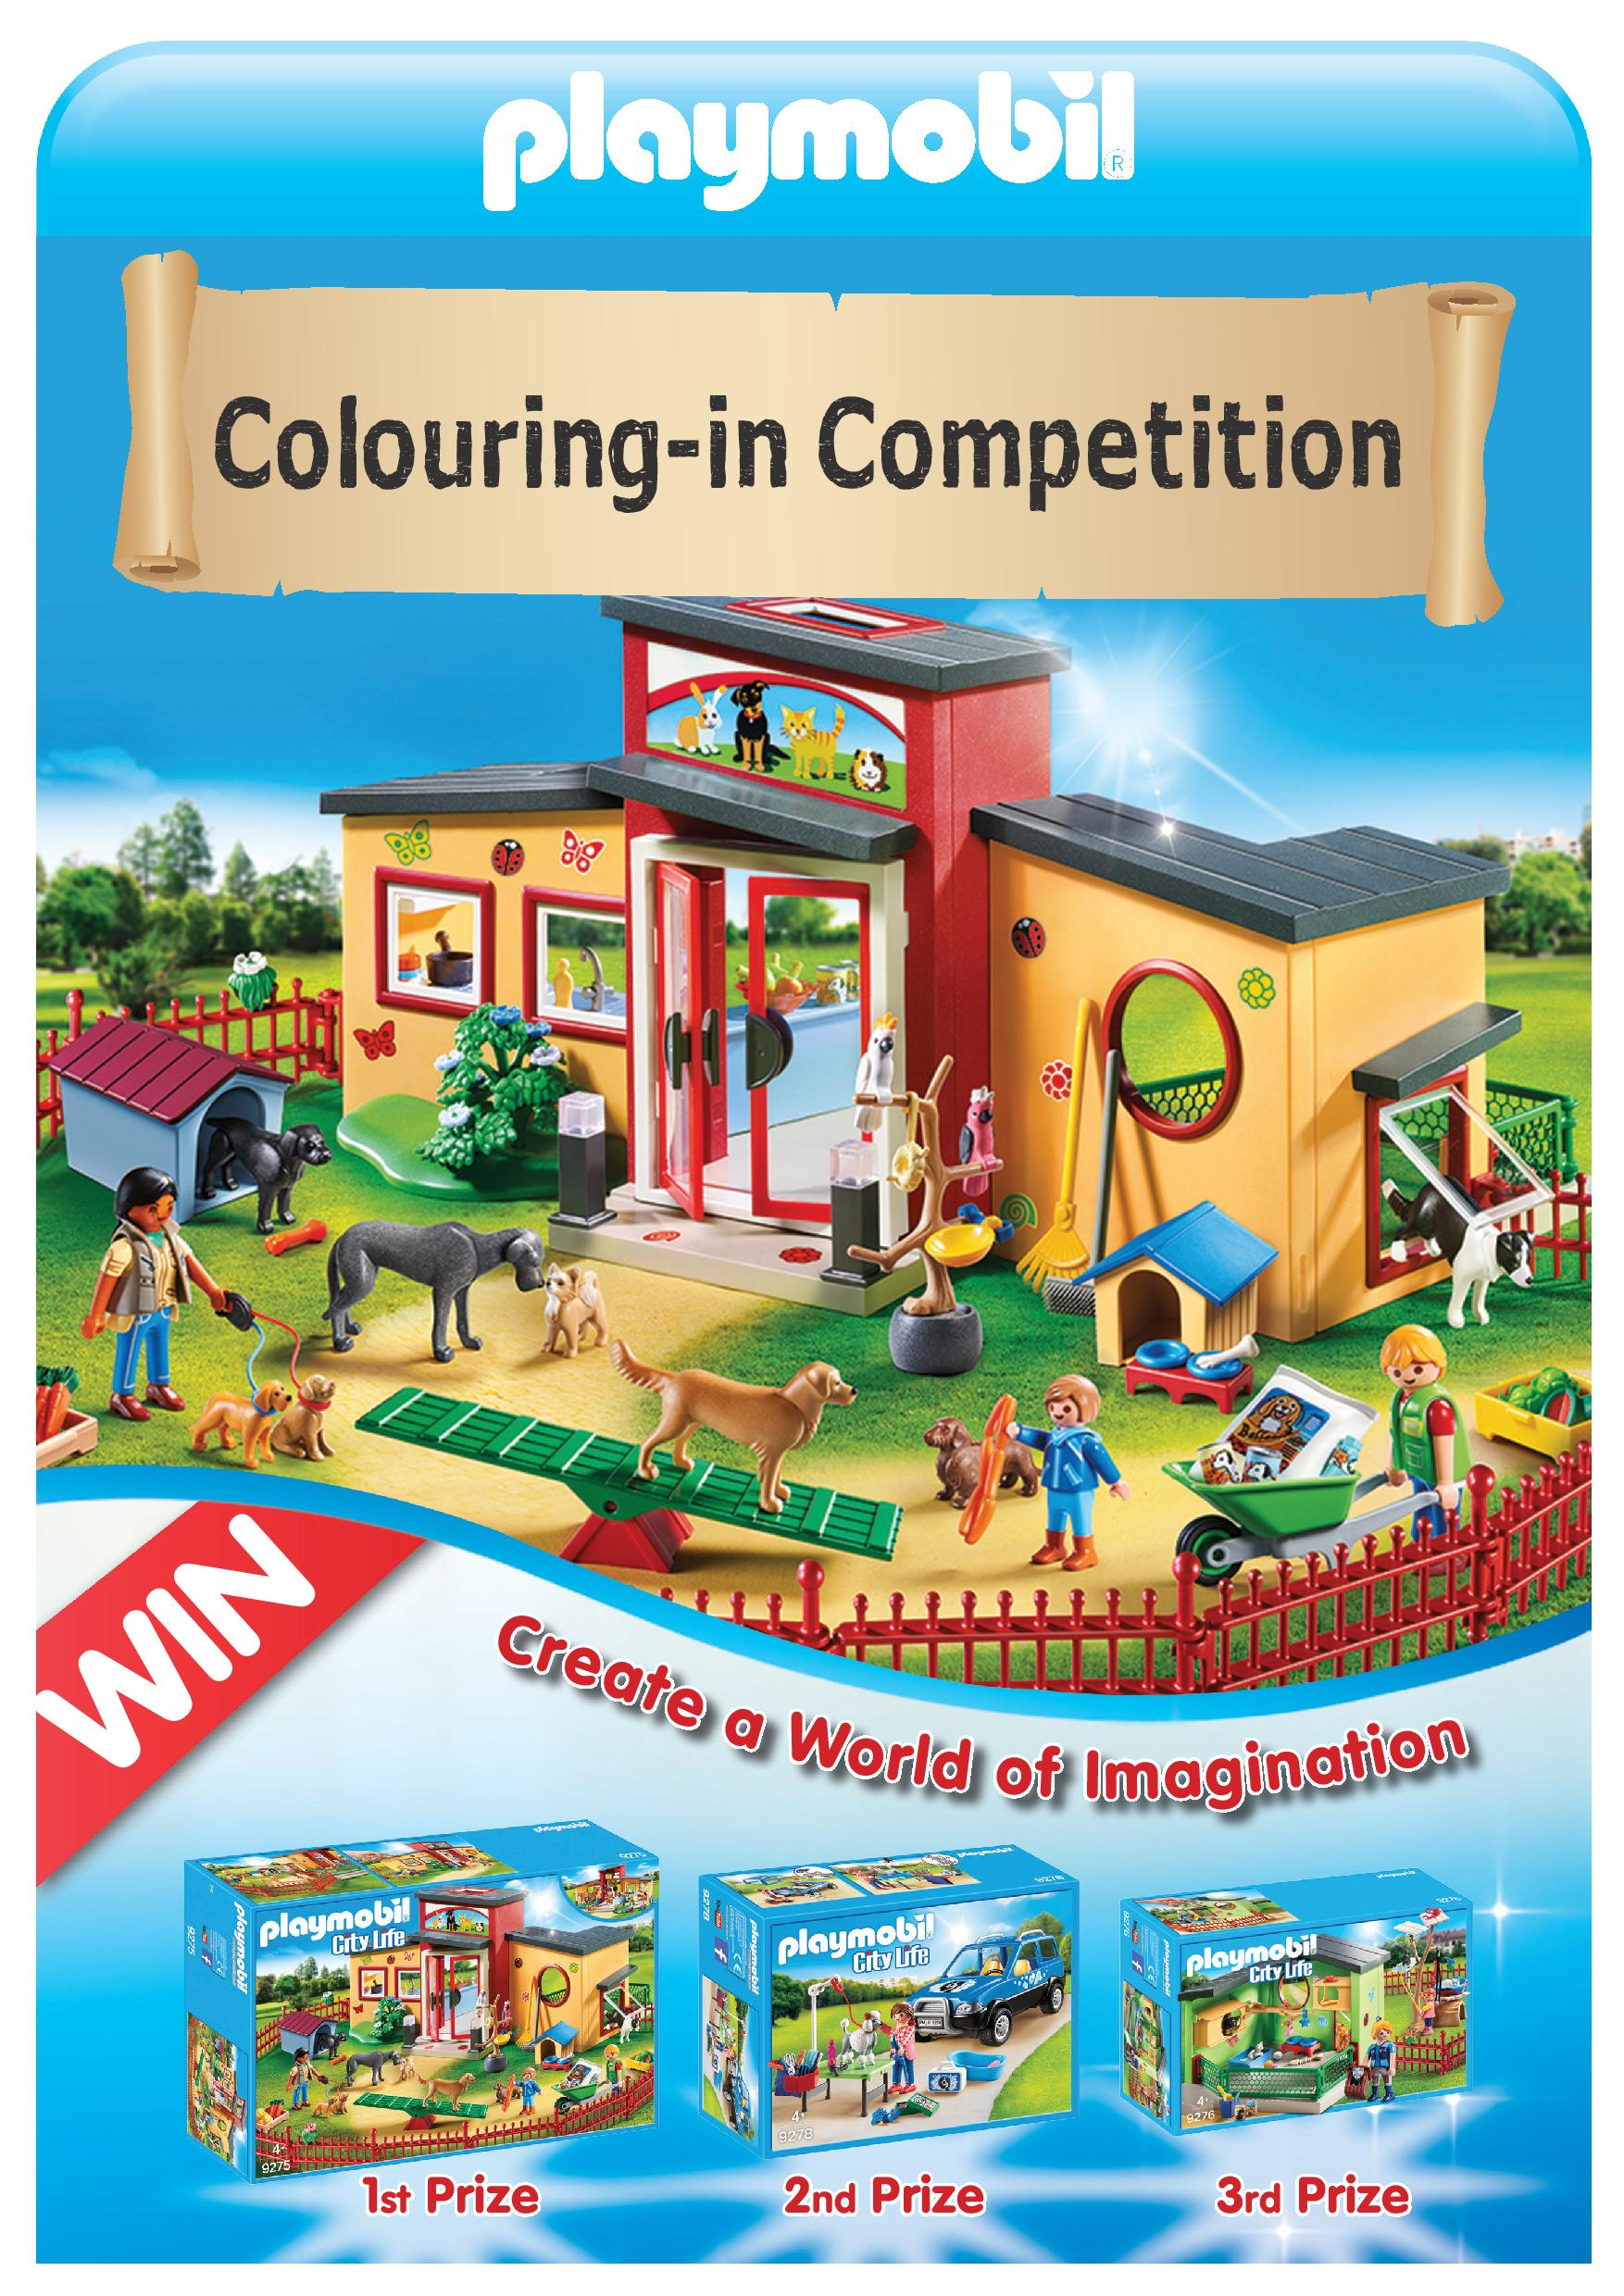 Playmobil Colouring-In Competition